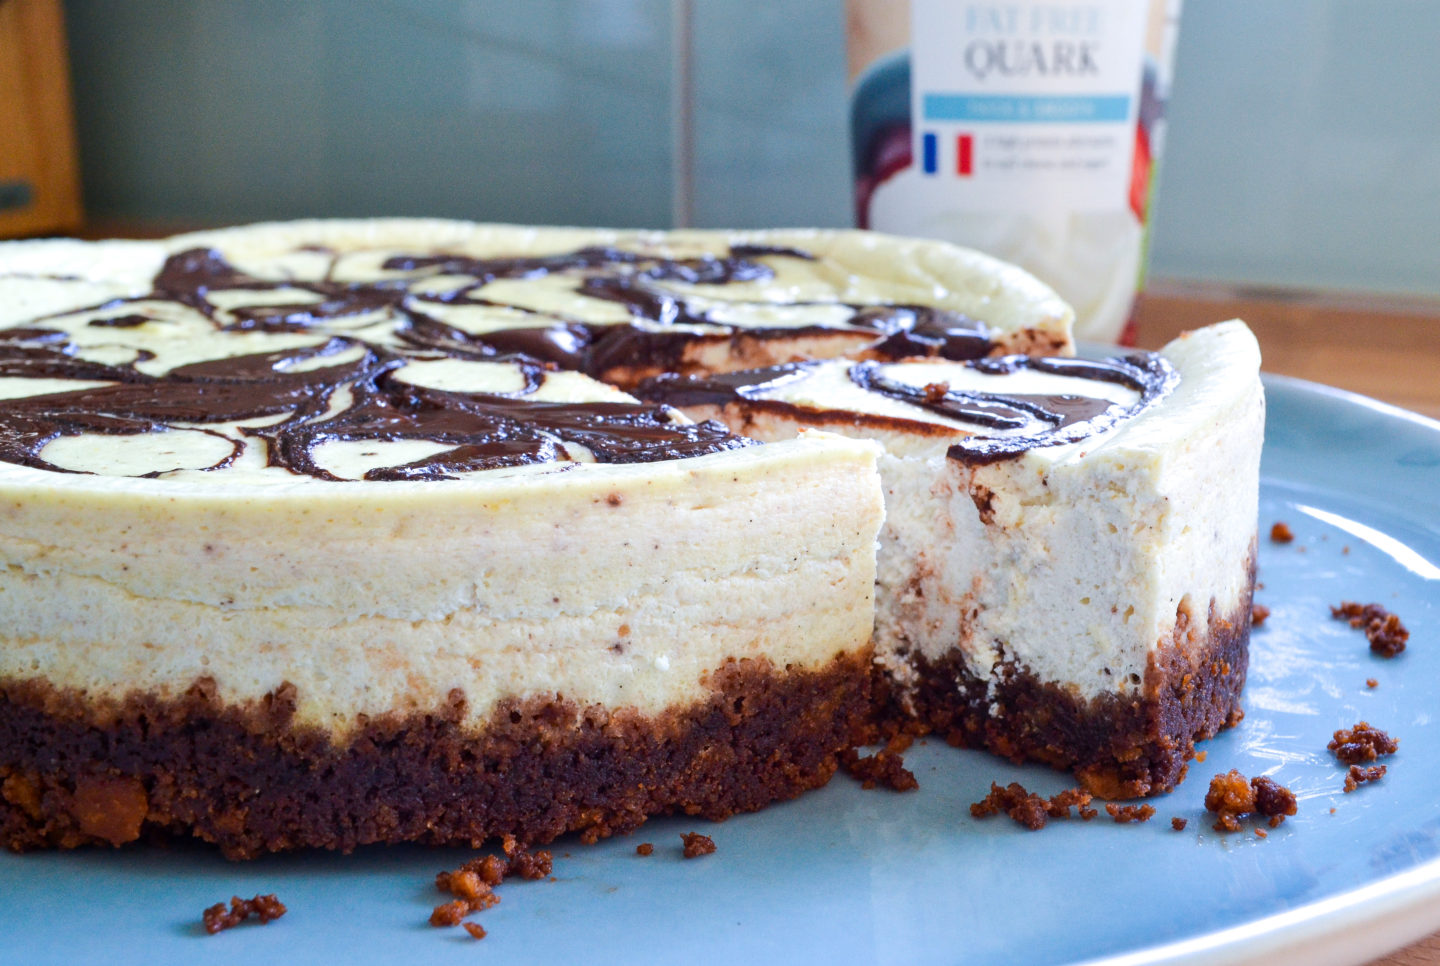 Quark baked cheesecake